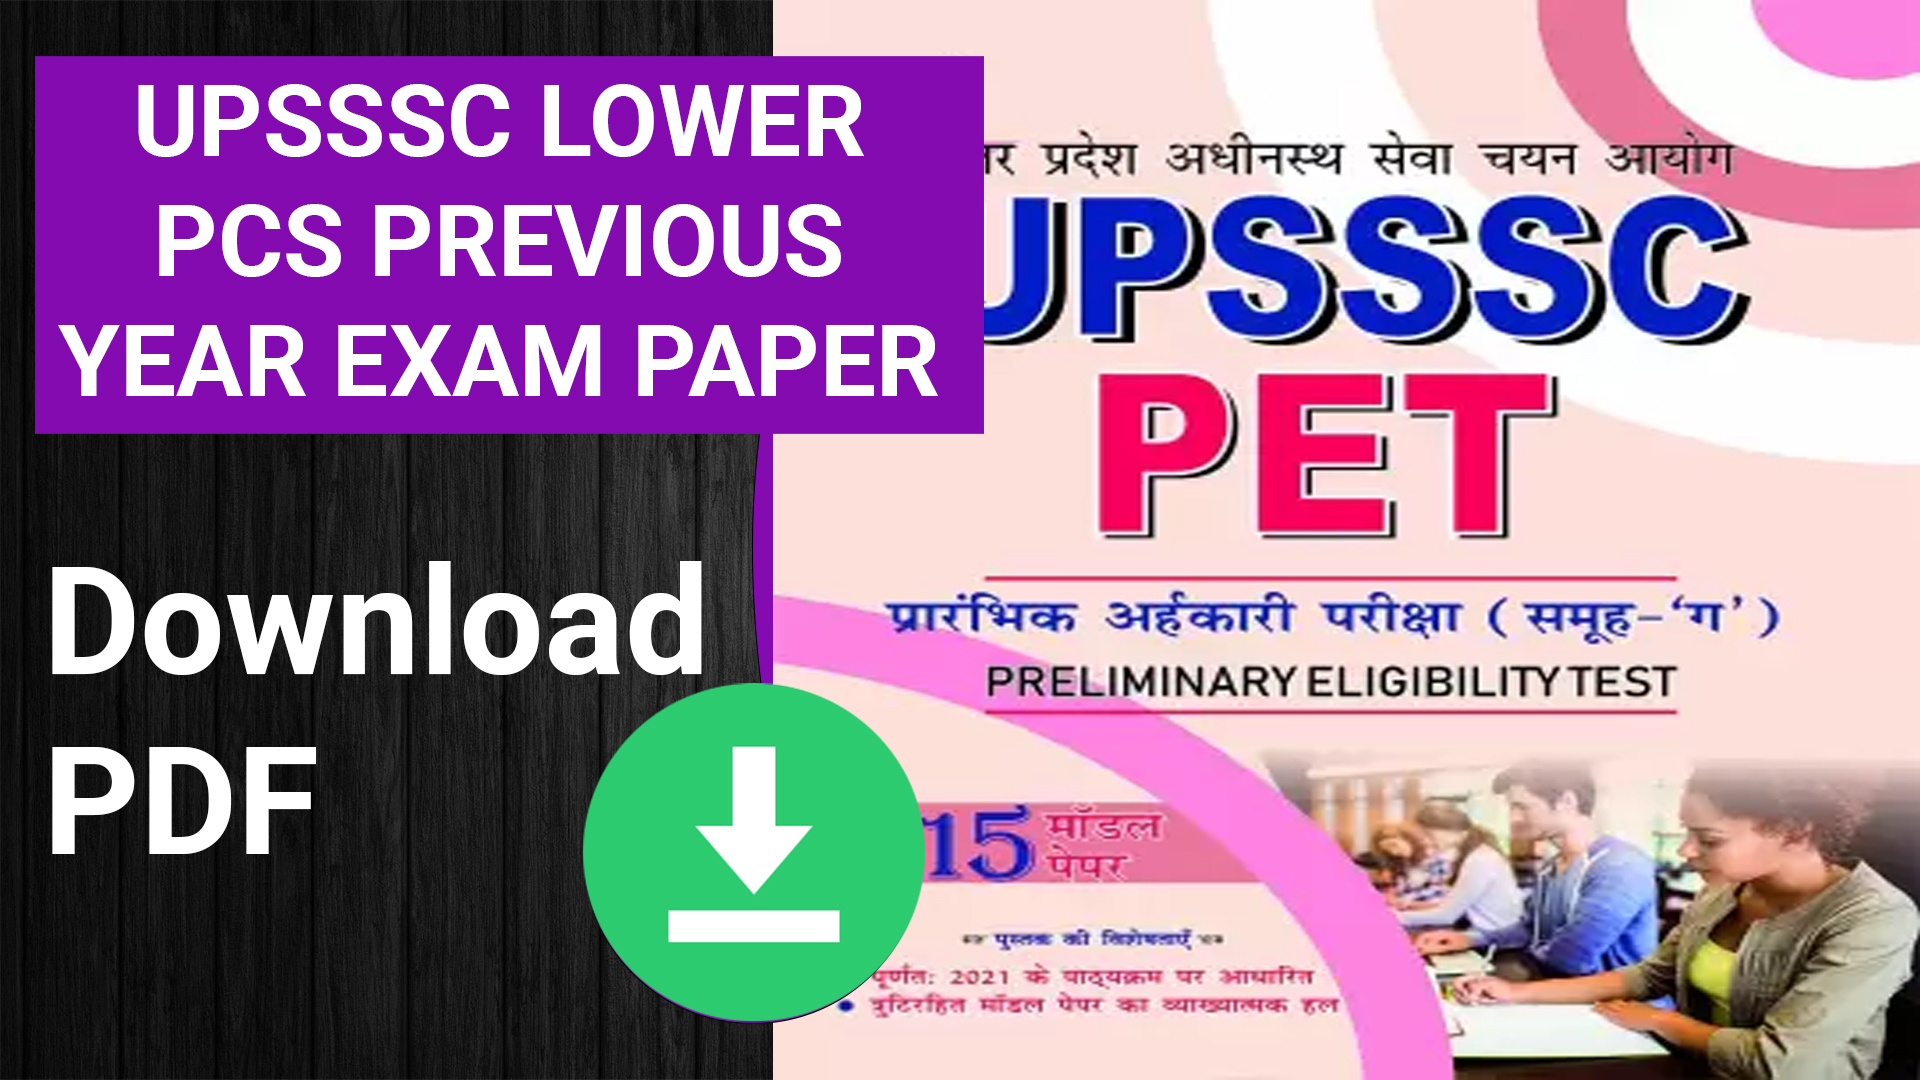 UPSSSC LOWER PCS PREVIOUS YEAR EXAM PAPER pdf download